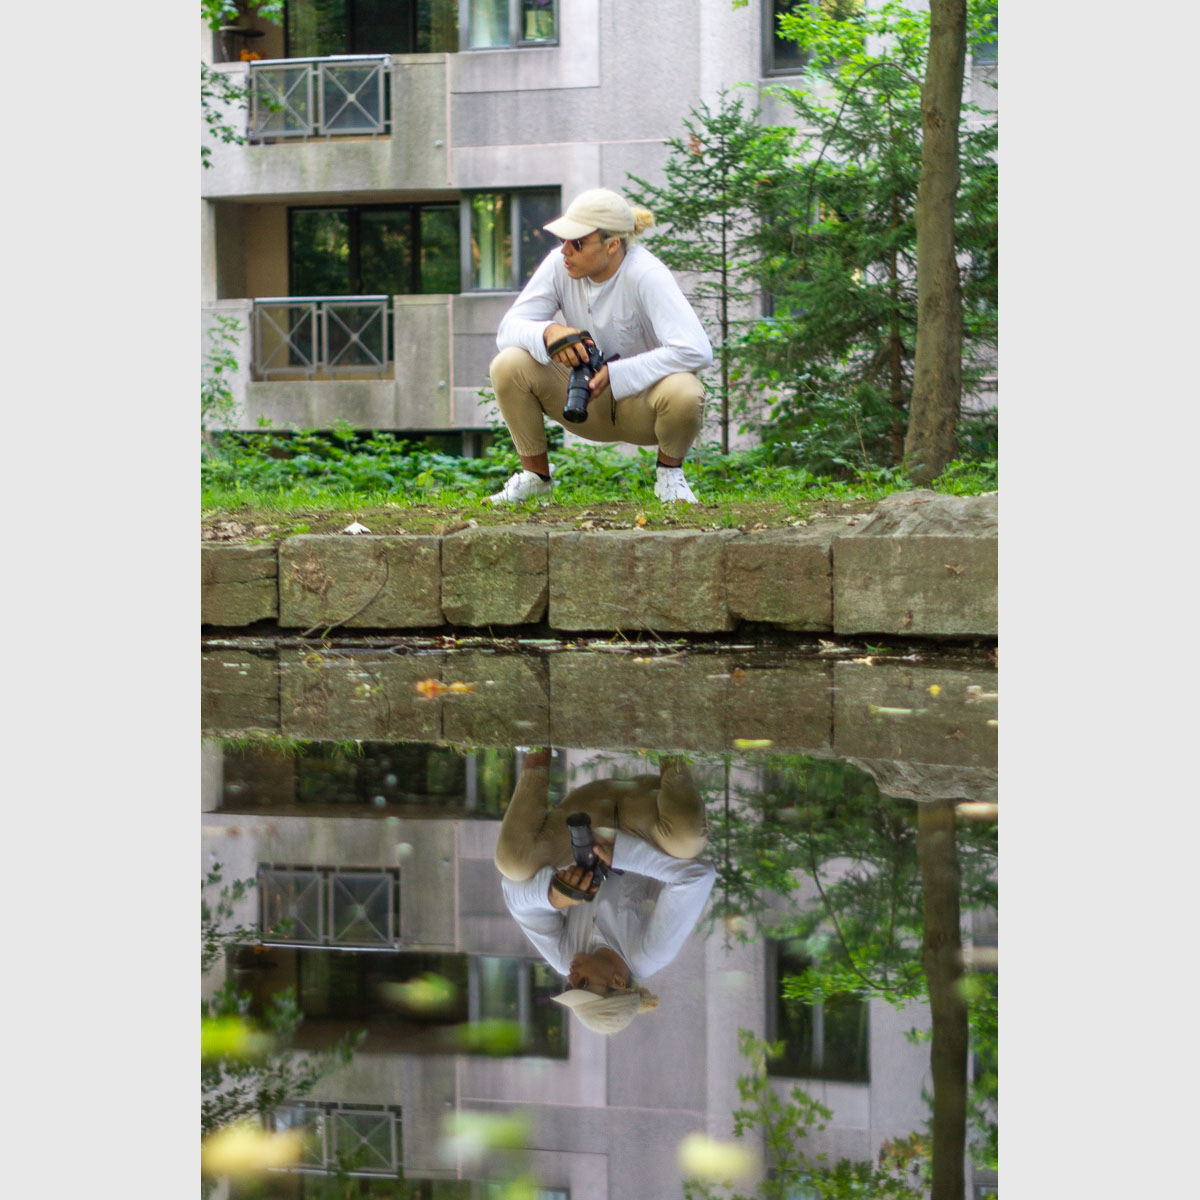 Tim Claude reflected in water, ready to snap some pics